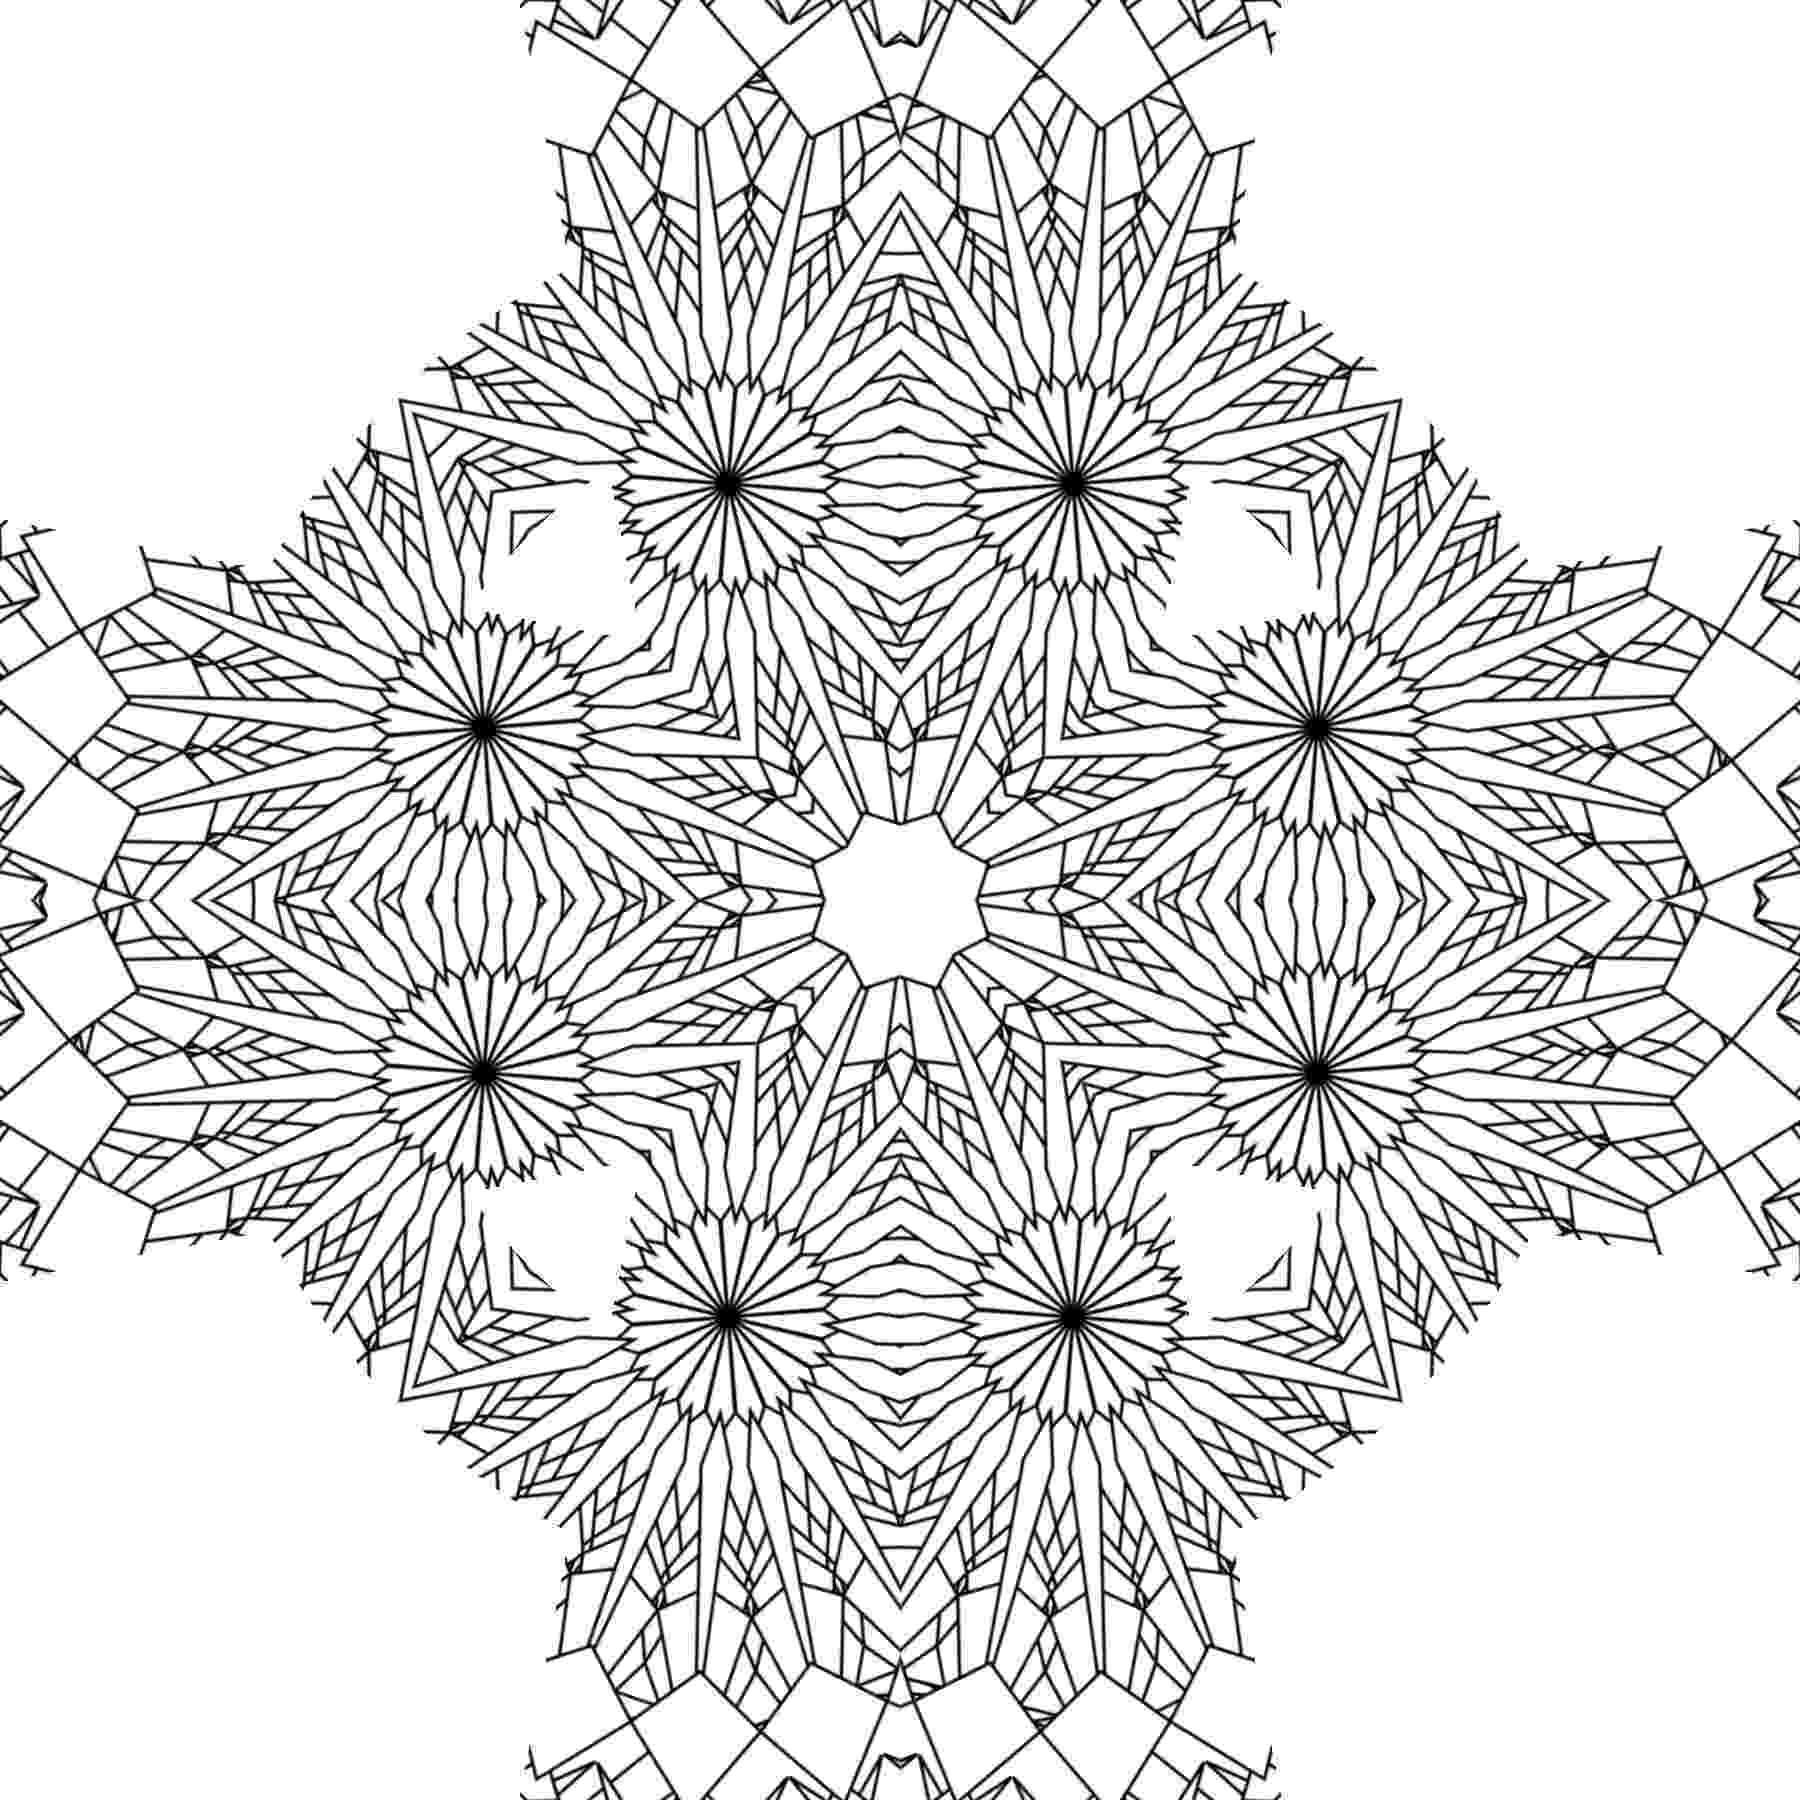 printable colouring patterns free printable geometric coloring pages for adults printable colouring patterns